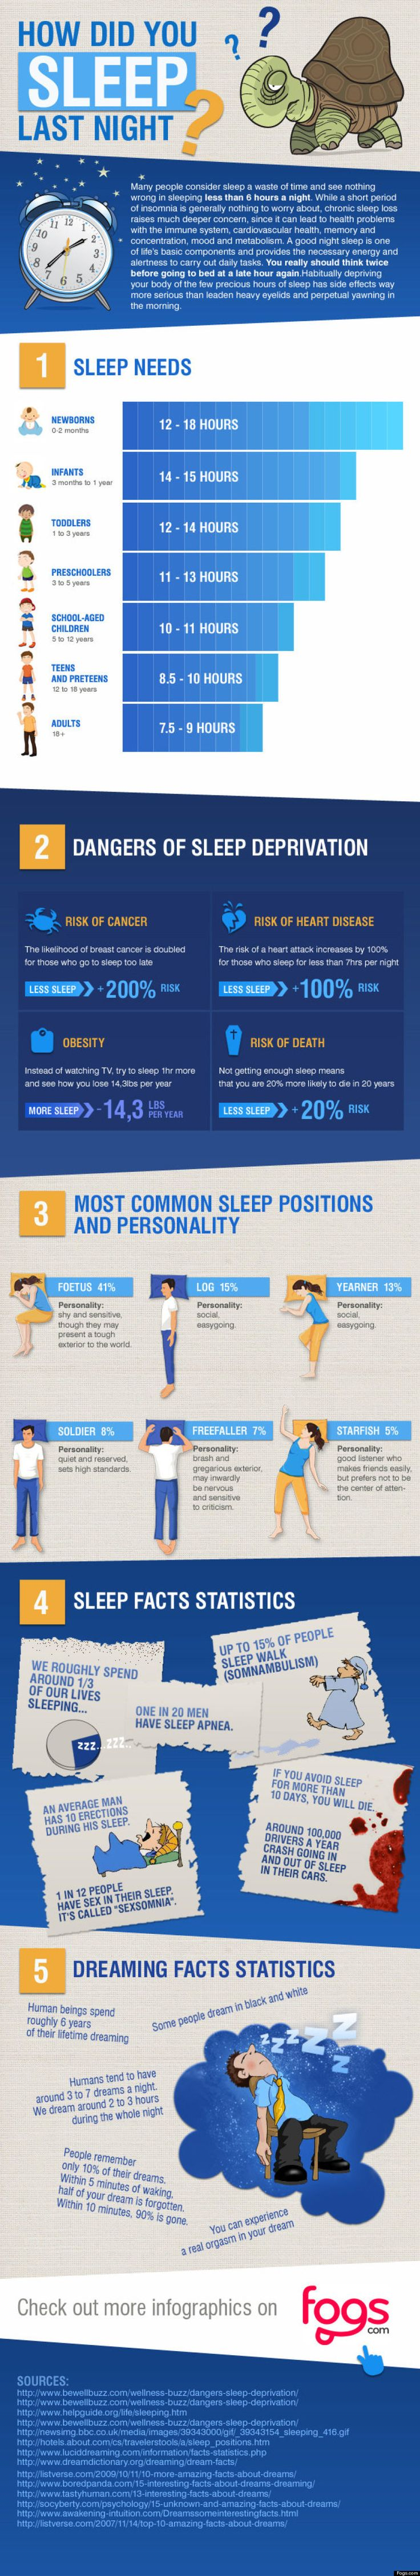 Good sleep = long healthy life. Regular sleep needs by age, the dangers of sleep deprivation, the relation of sleep postures and personality and even more for the most rela... http://eclipcity.com